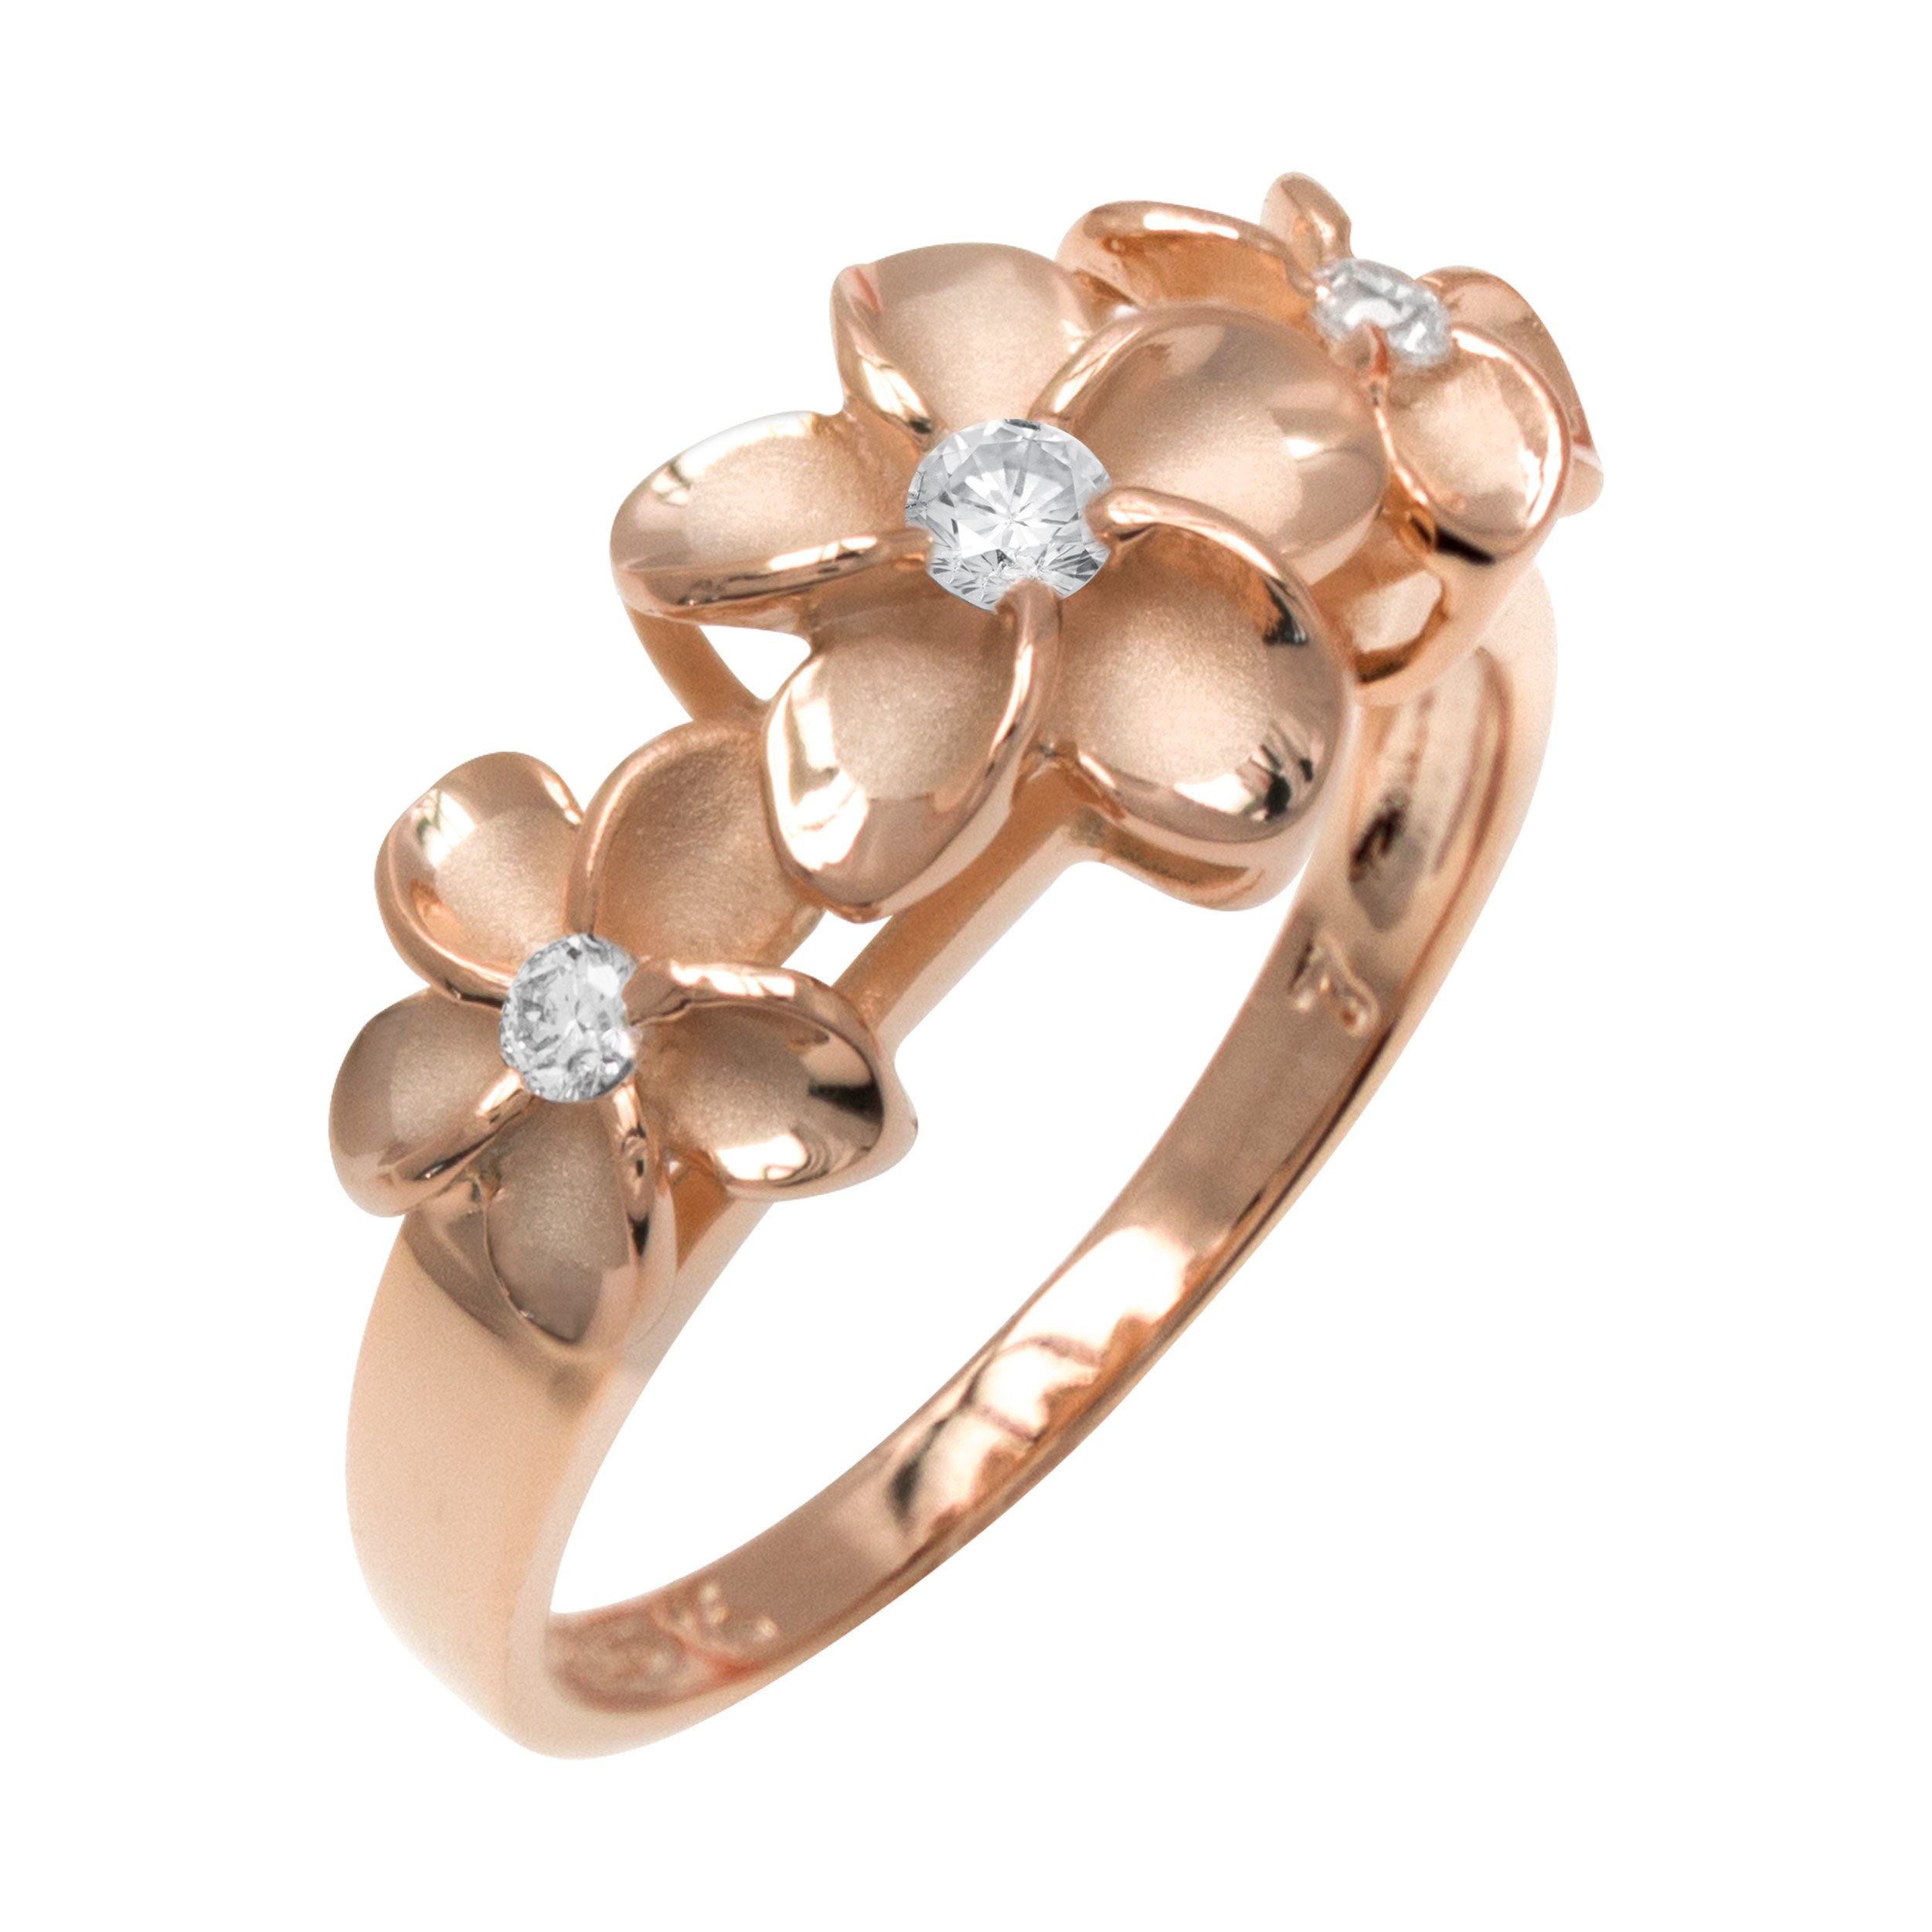 Honolulu Jewelry Company Three Plumeria CZ Ring with 14K Rose Gold Finish over Sterling Silver(8)